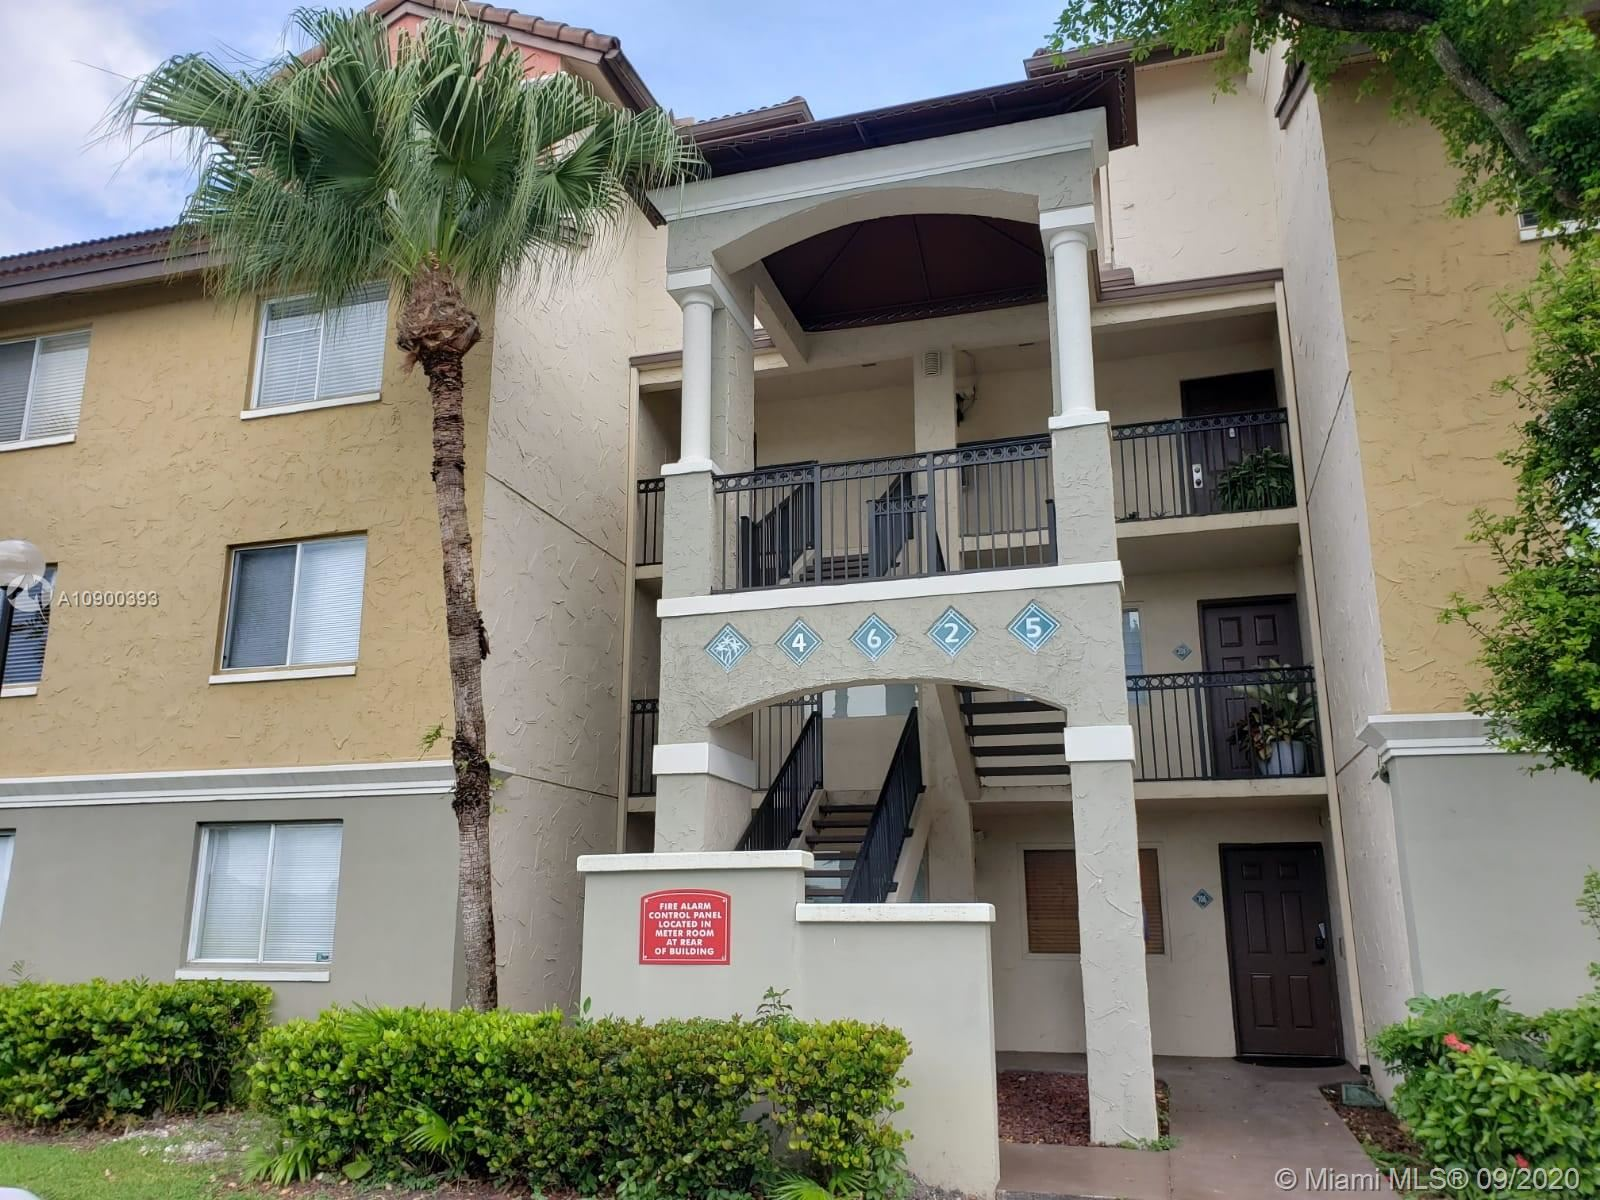 4625 NW 99th Ave #105-8, Doral, FL 33178 - #: A10900393